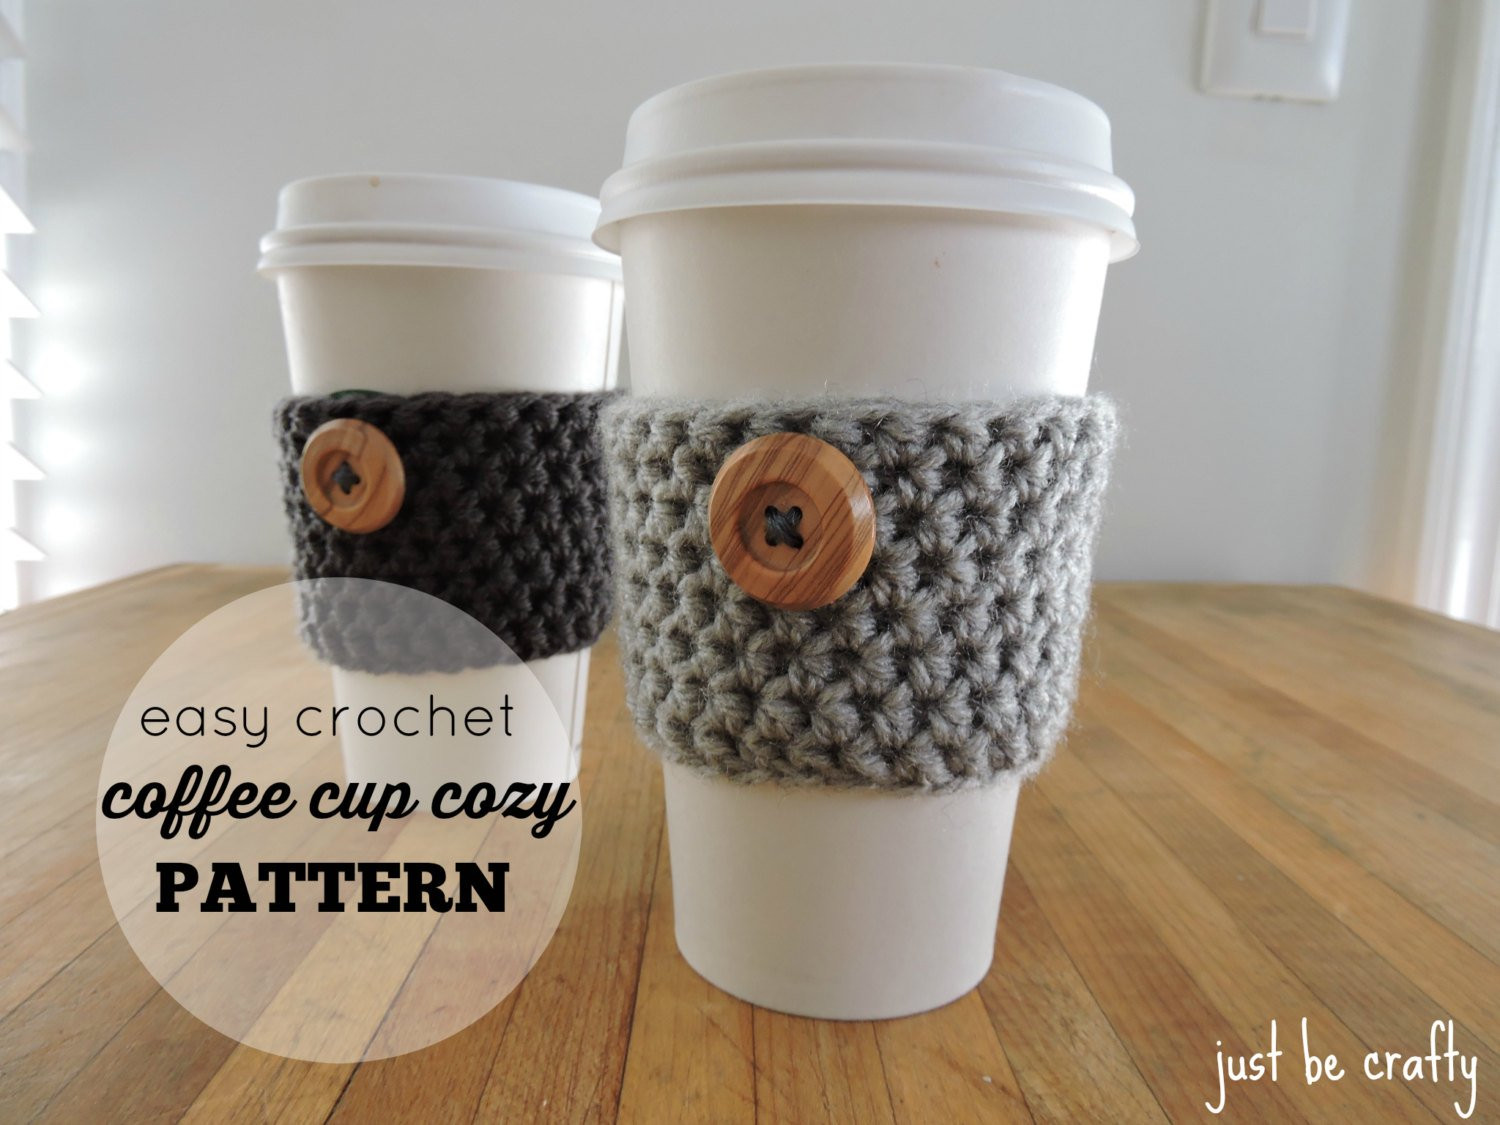 Crochet Coffee Cup Cozy Inspirational Crochet Coffee Cup Cozy Pattern Pdf Download Coffee Cup Cozy Of Crochet Coffee Cup Cozy Awesome Crochet Coffee Cozy Amy Latta Creations